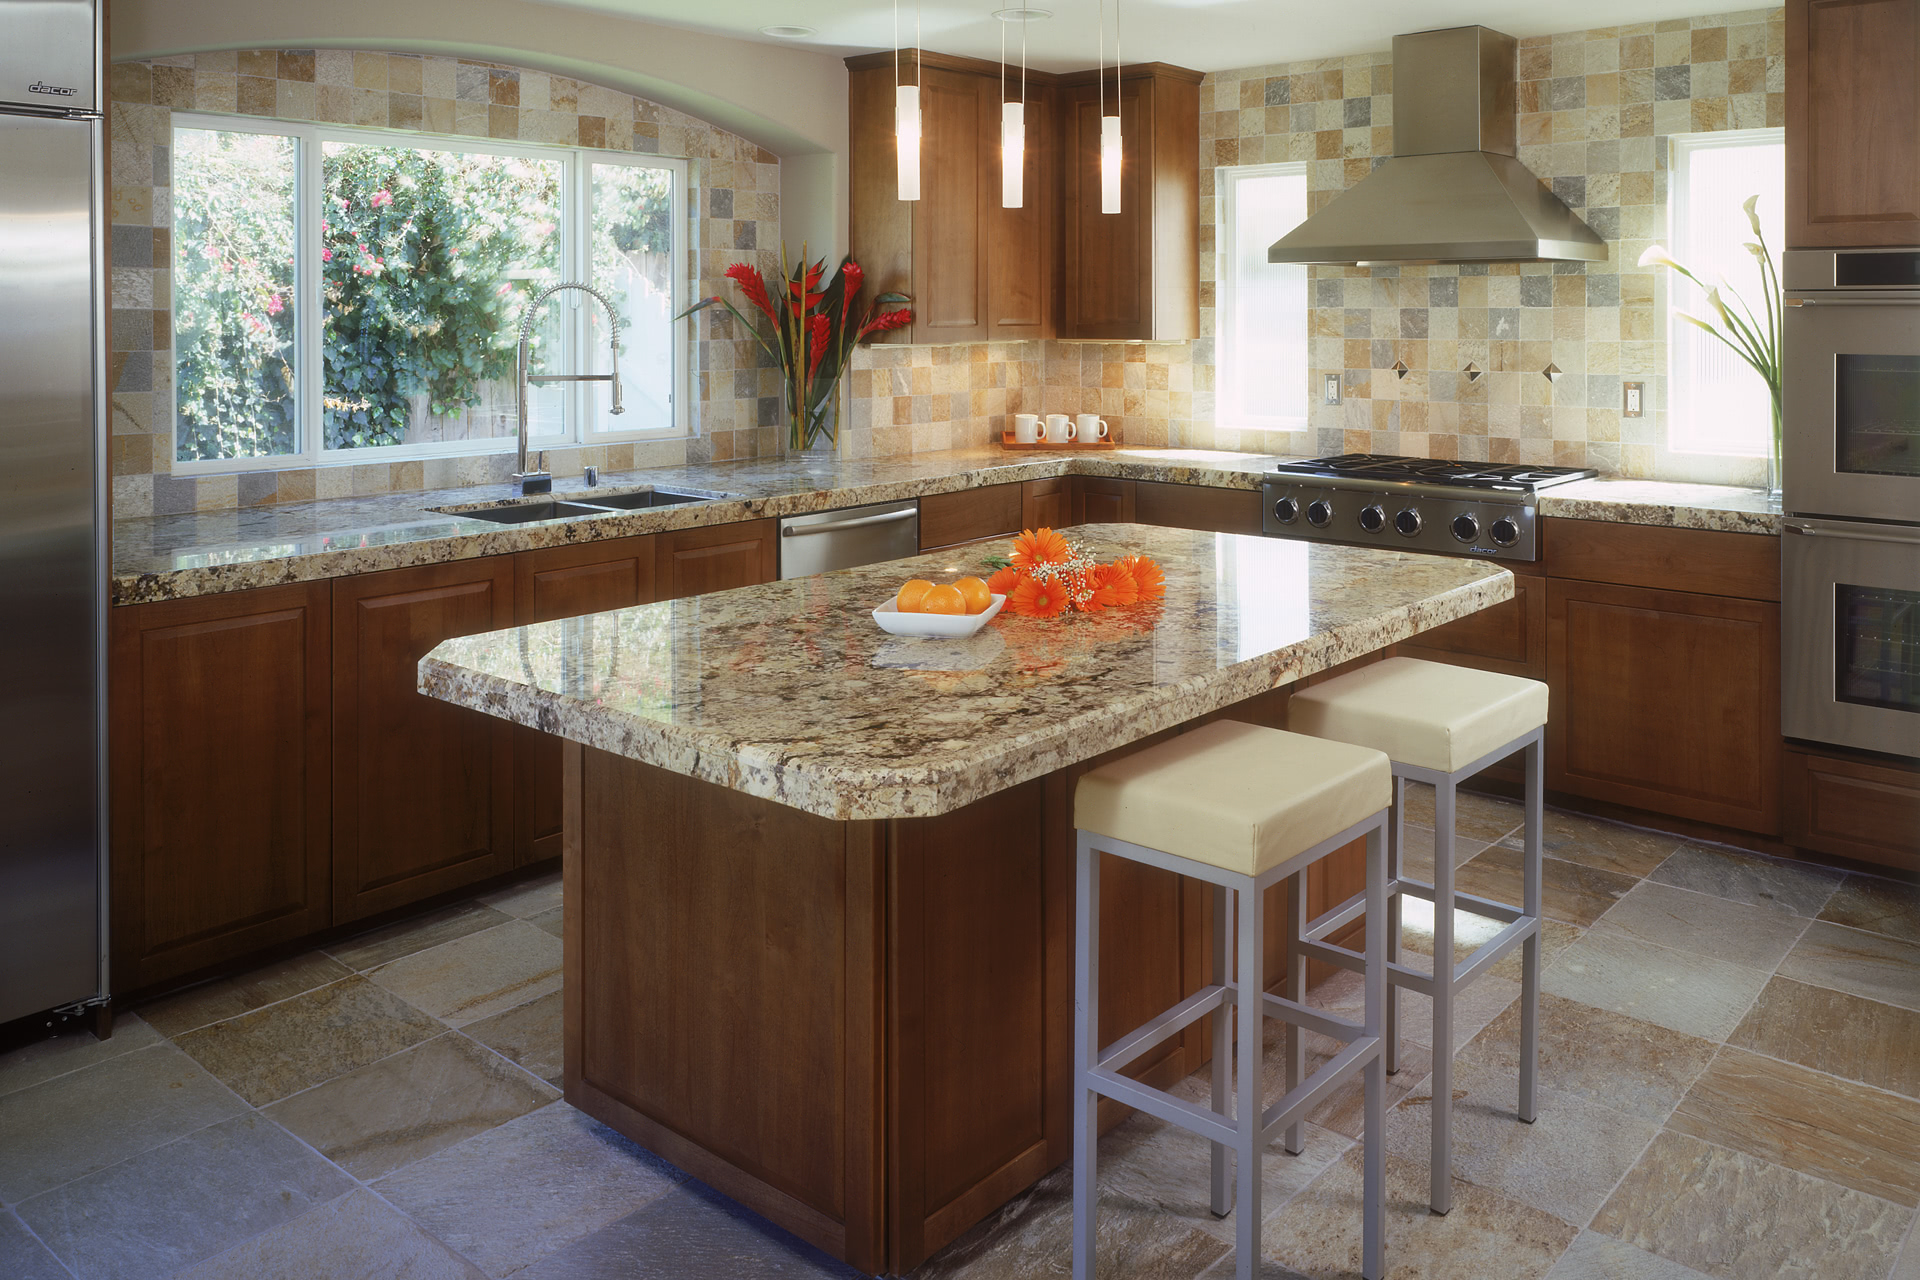 Modern Contemporary Kitchen Cabinets Painted White Glaze Beadboard